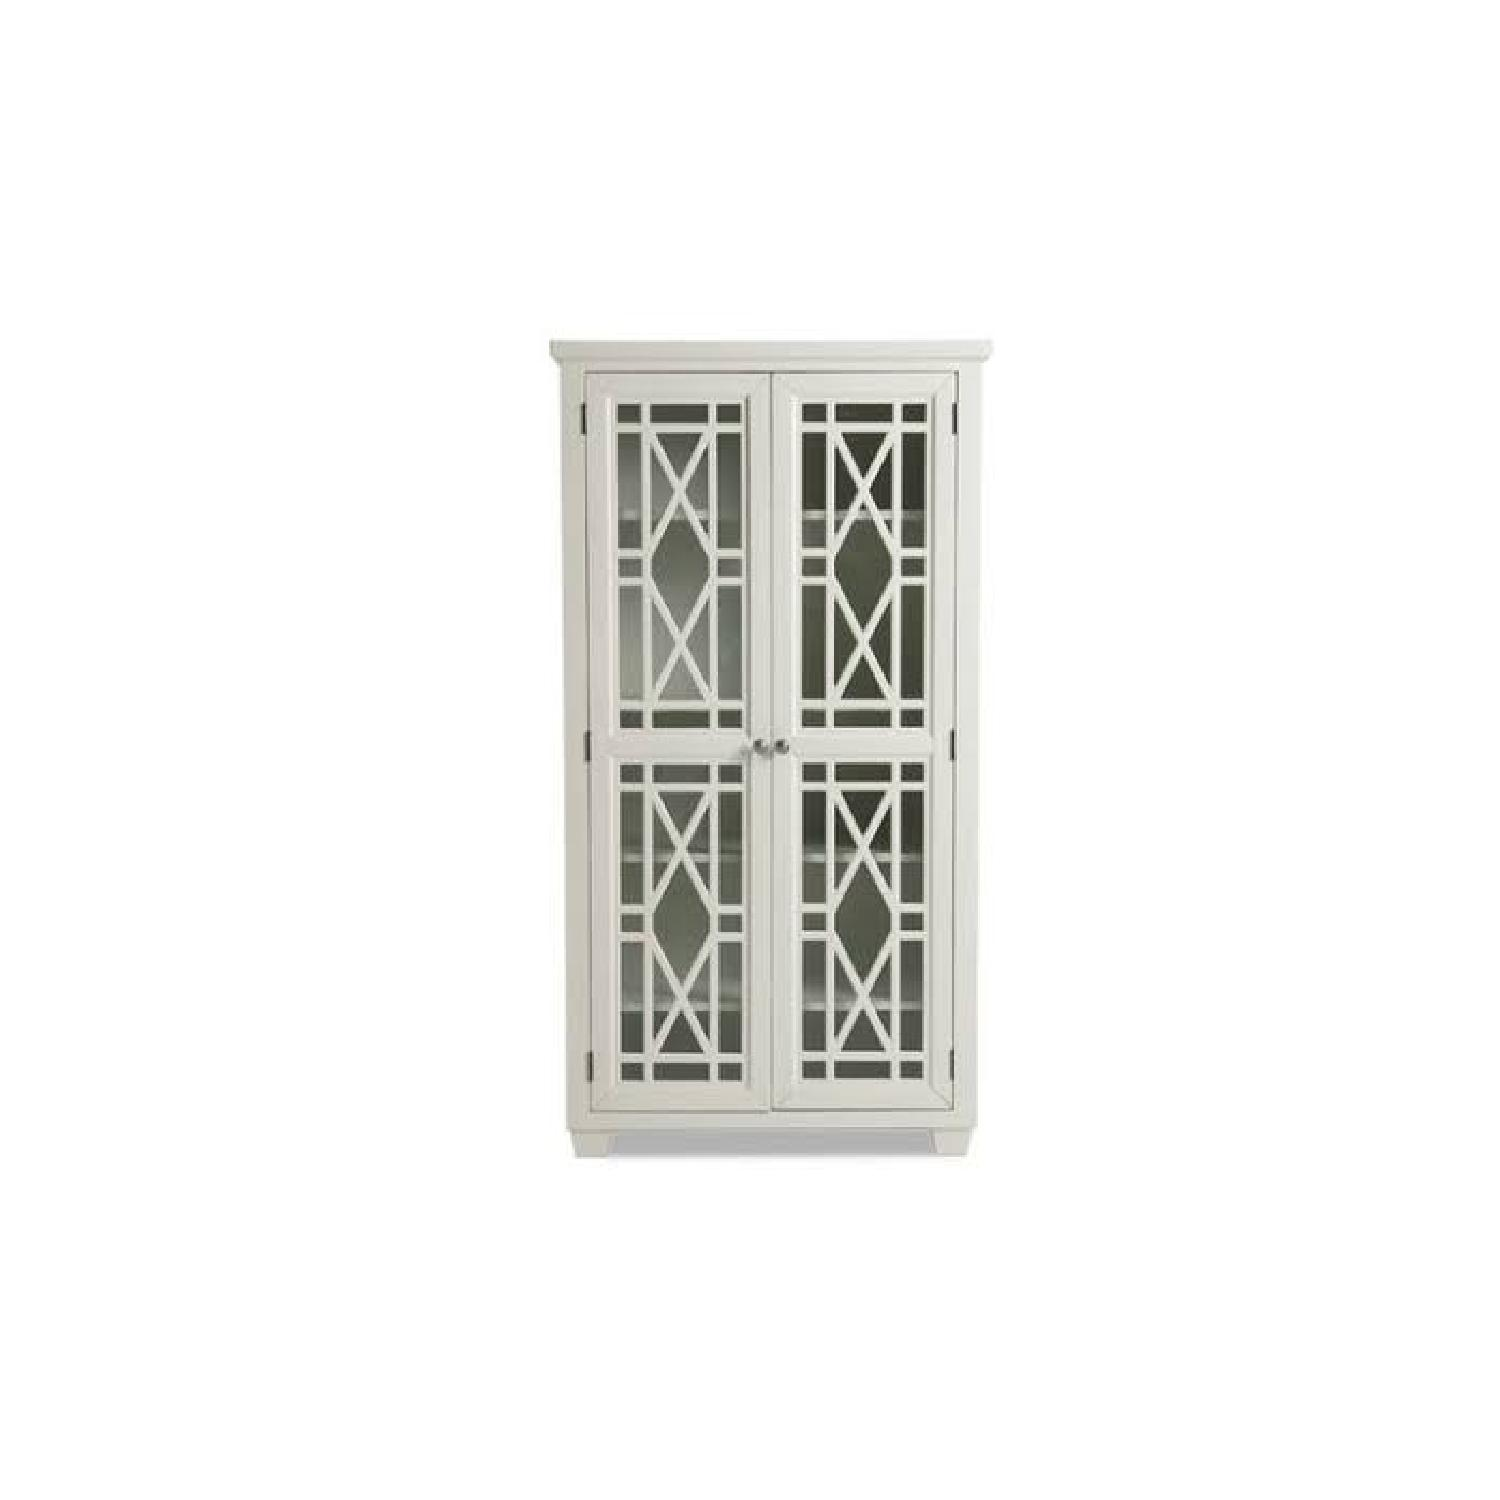 Bob's Discount Lacy Tall 2DR Cabinet Farm House Stlye - image-0